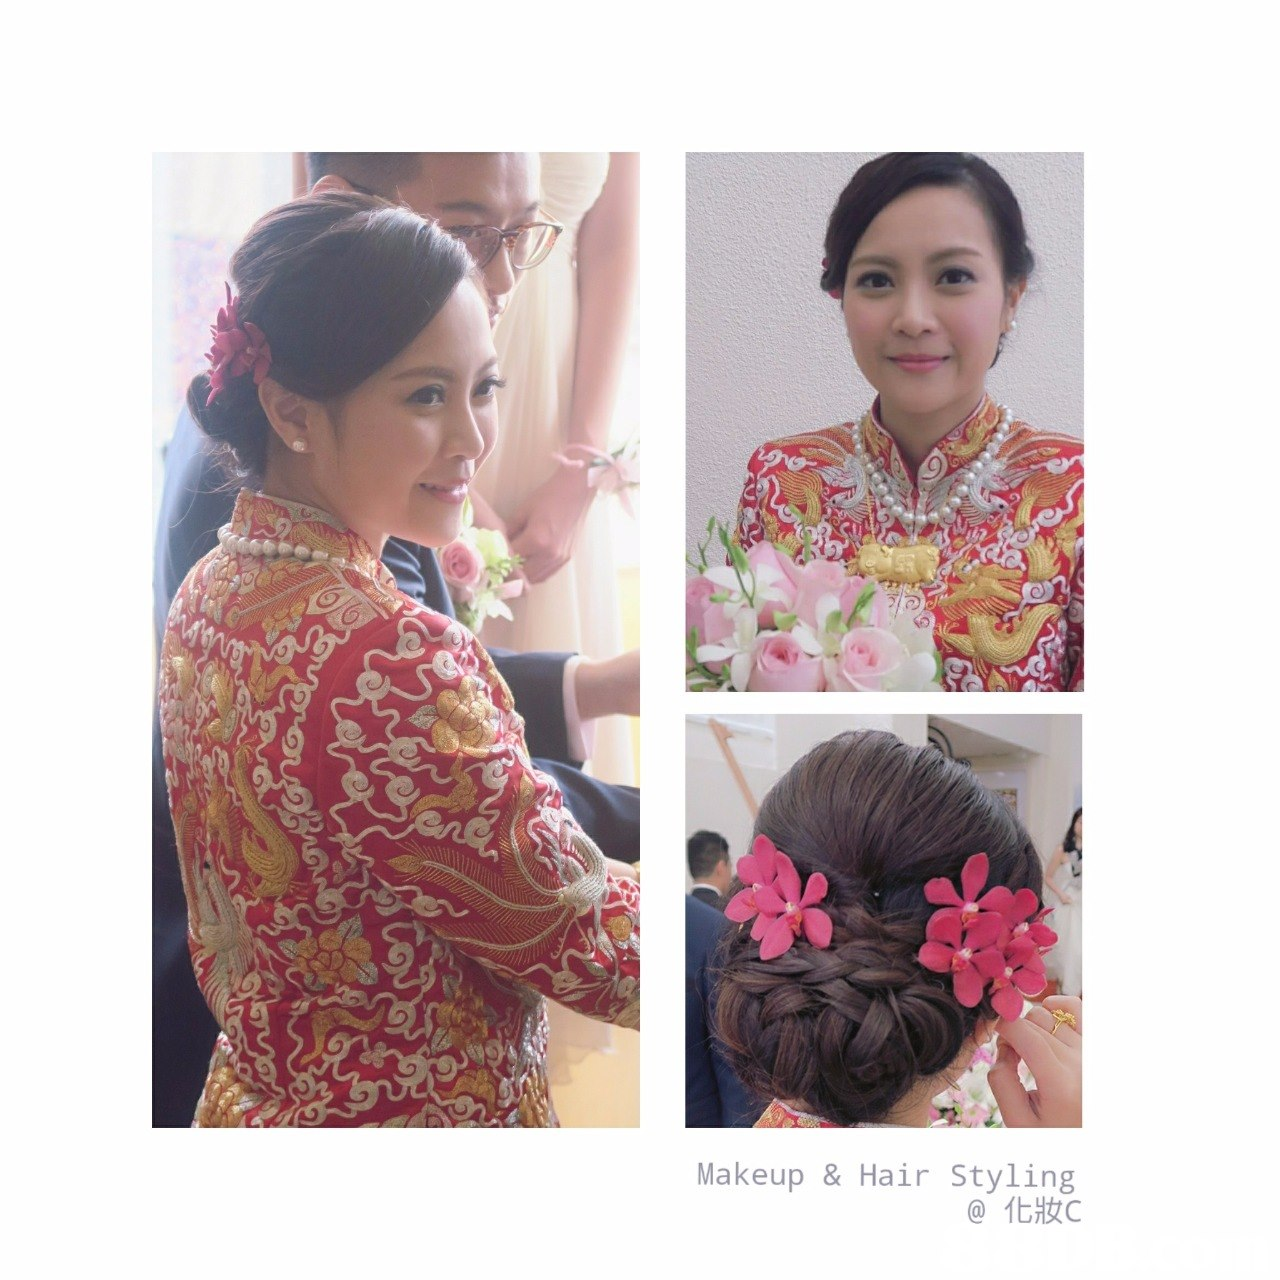 Makeup & Hair Styling @化妝C,pink,hairstyle,fashion accessory,hair accessory,tradition